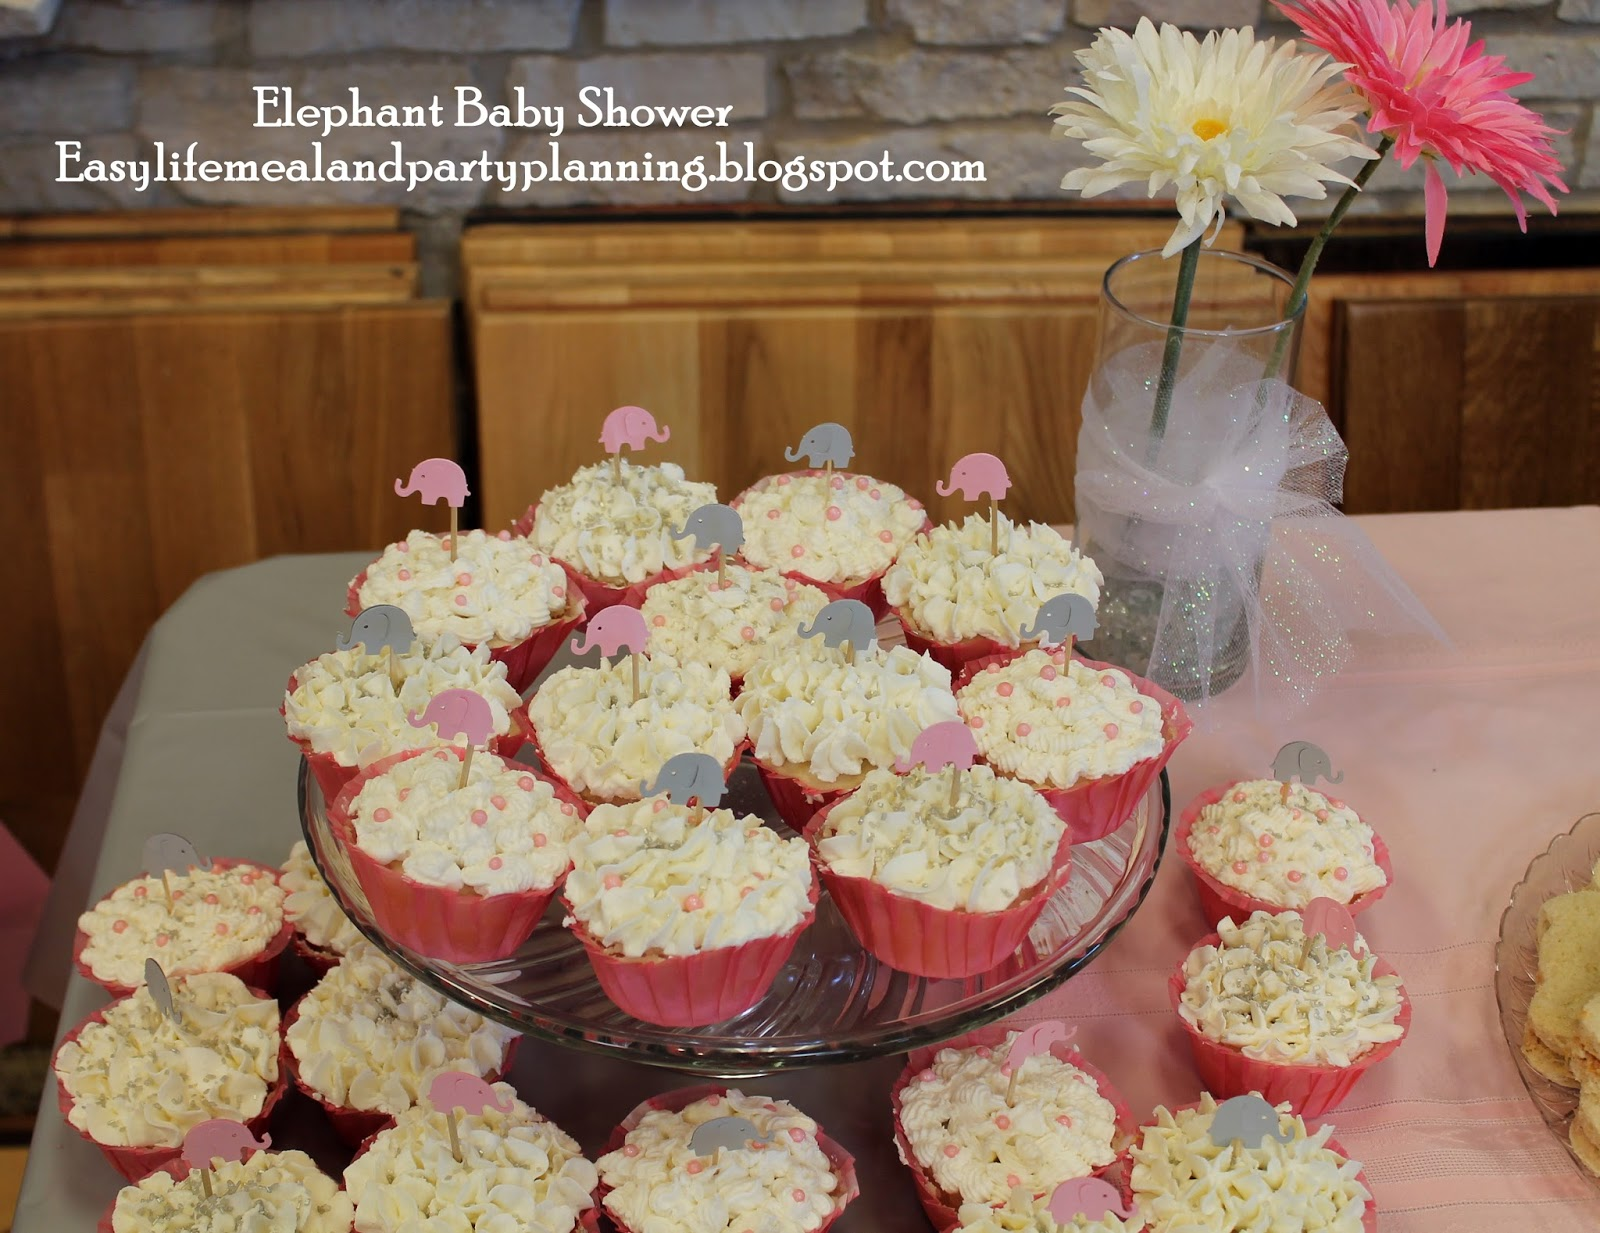 Easy Life Meal and Party Planning It s a Party Elephant Theme